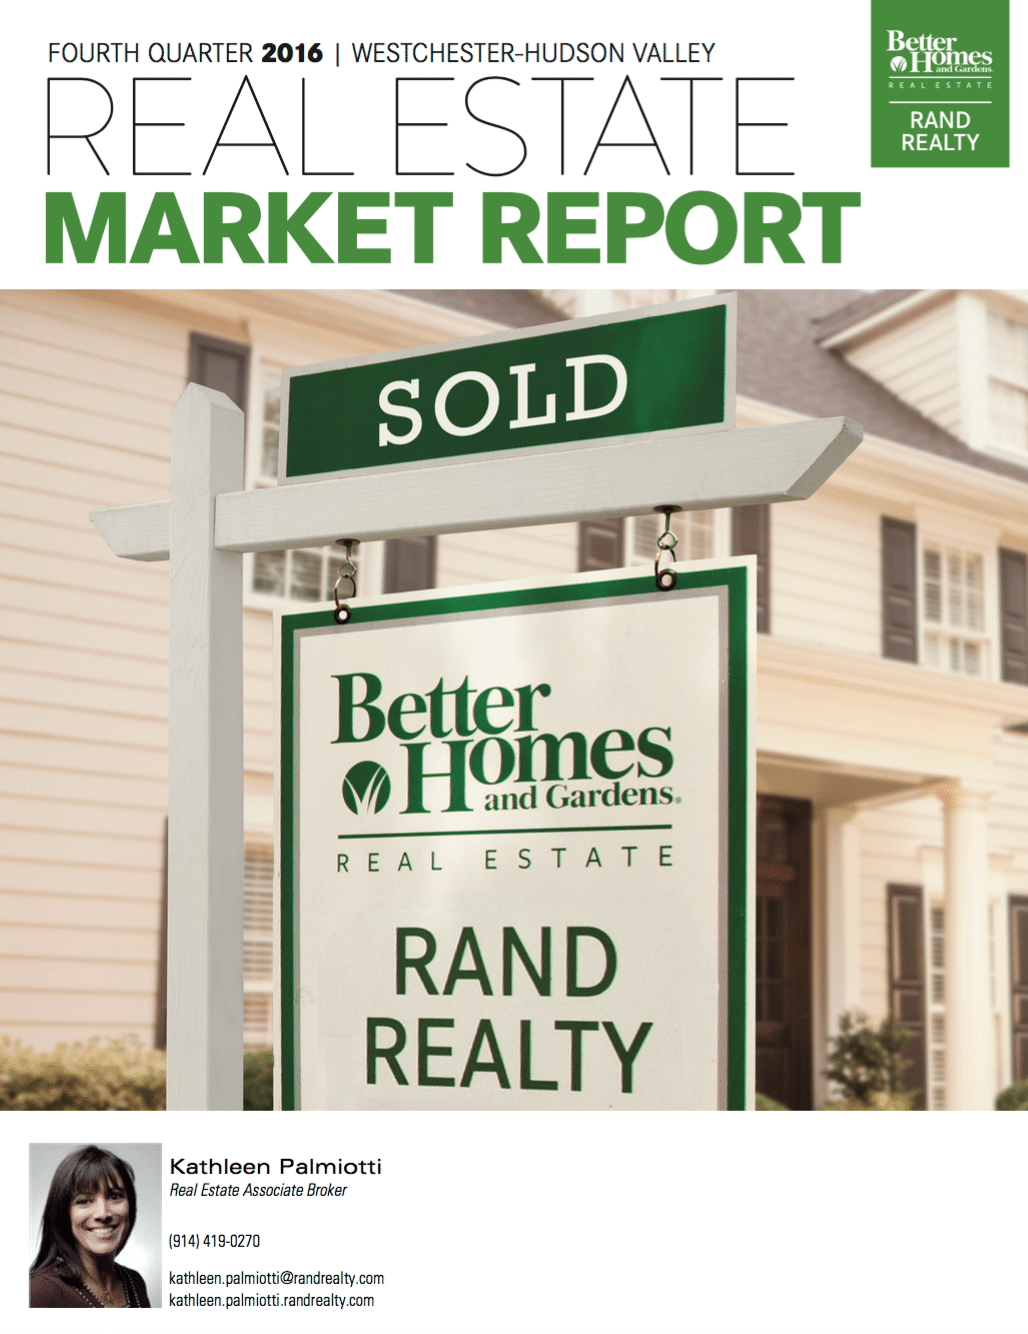 Monroe NY and Hudson Valley Market Report: 4Q16